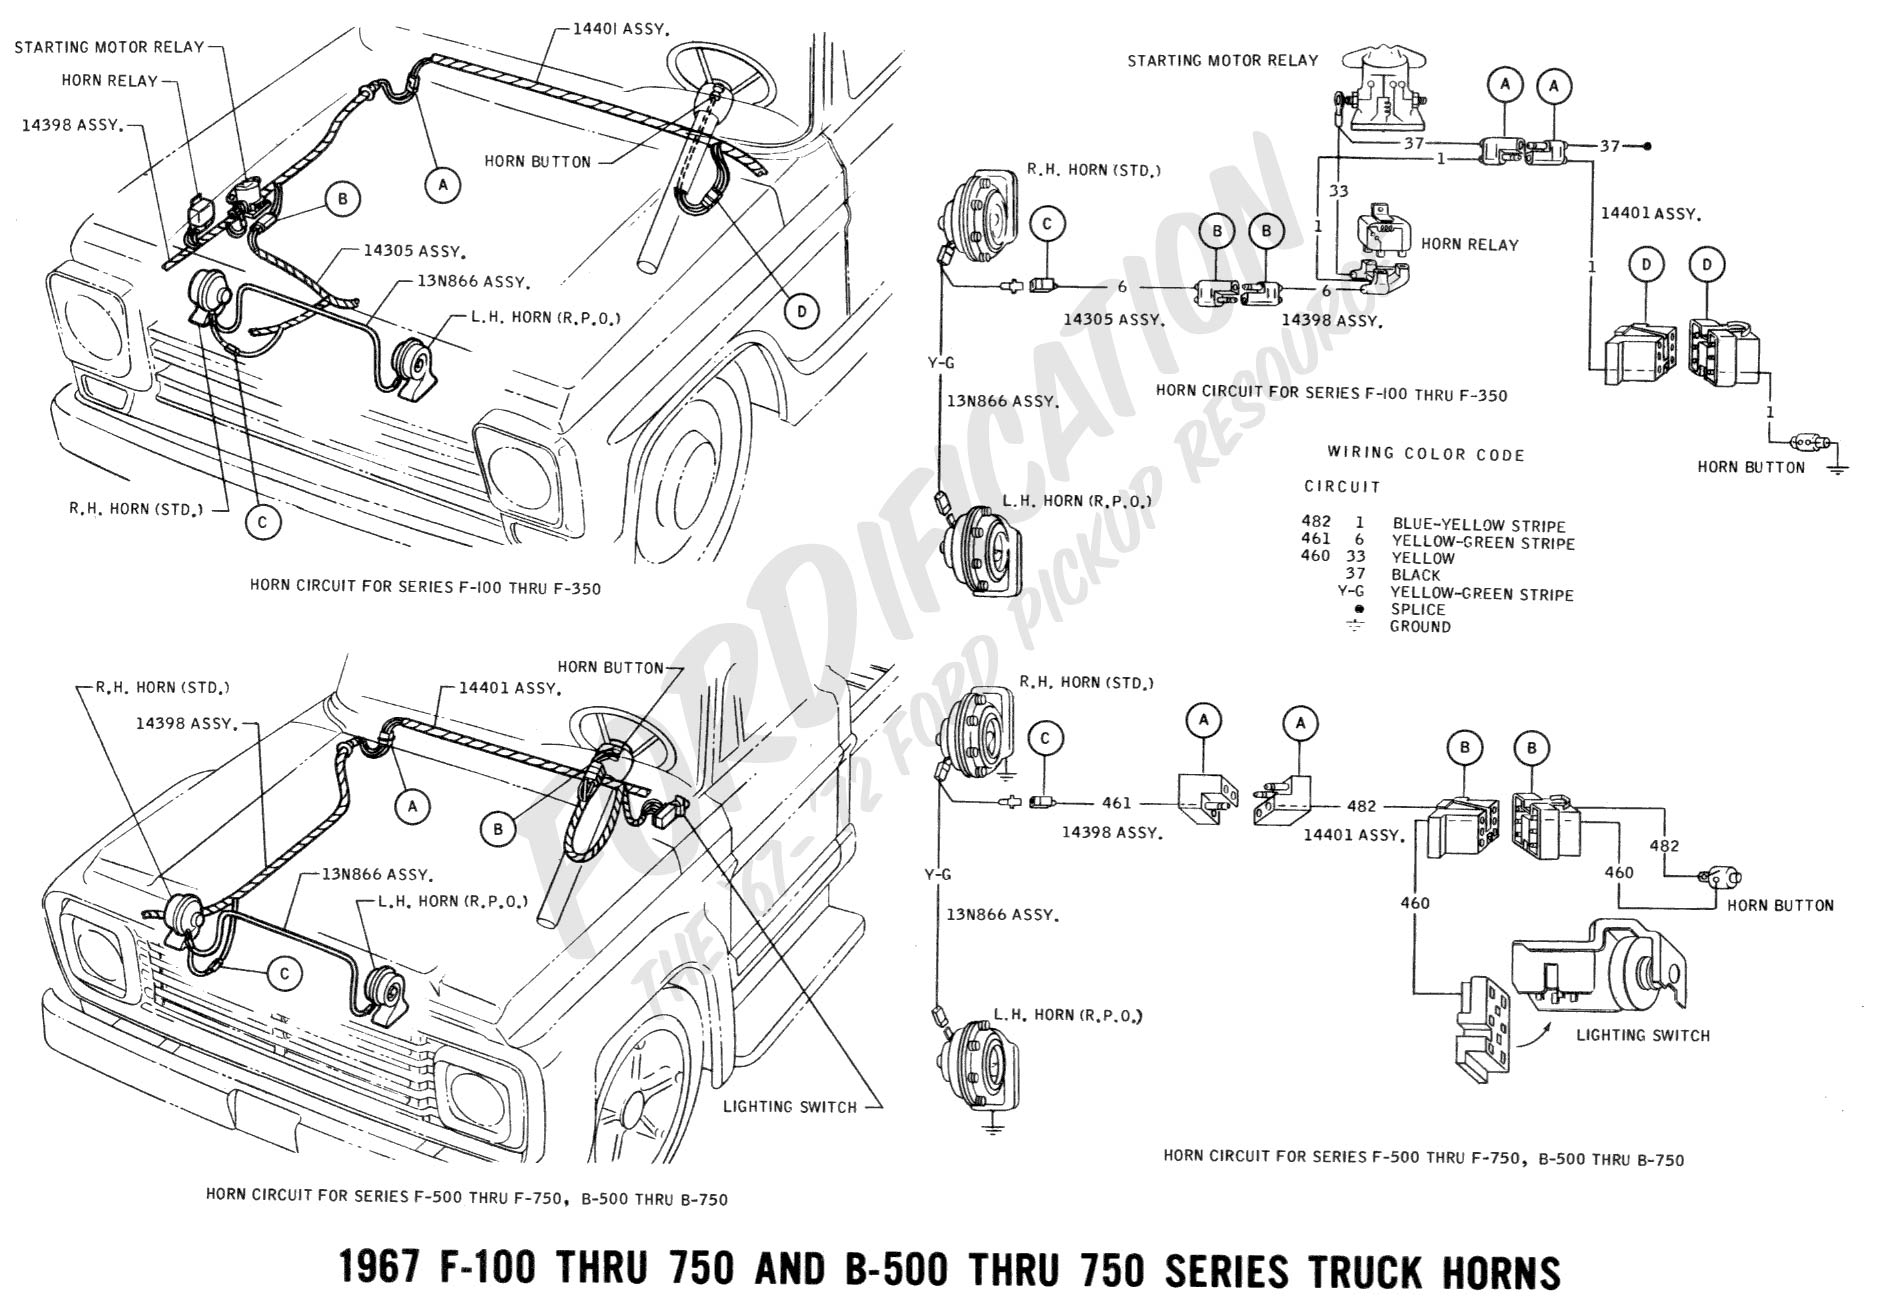 Wiring Diagram For 1966 Ford F600 Truck Smart Diagrams Technical Drawings And Schematics Section H 1970 Alternator 1976